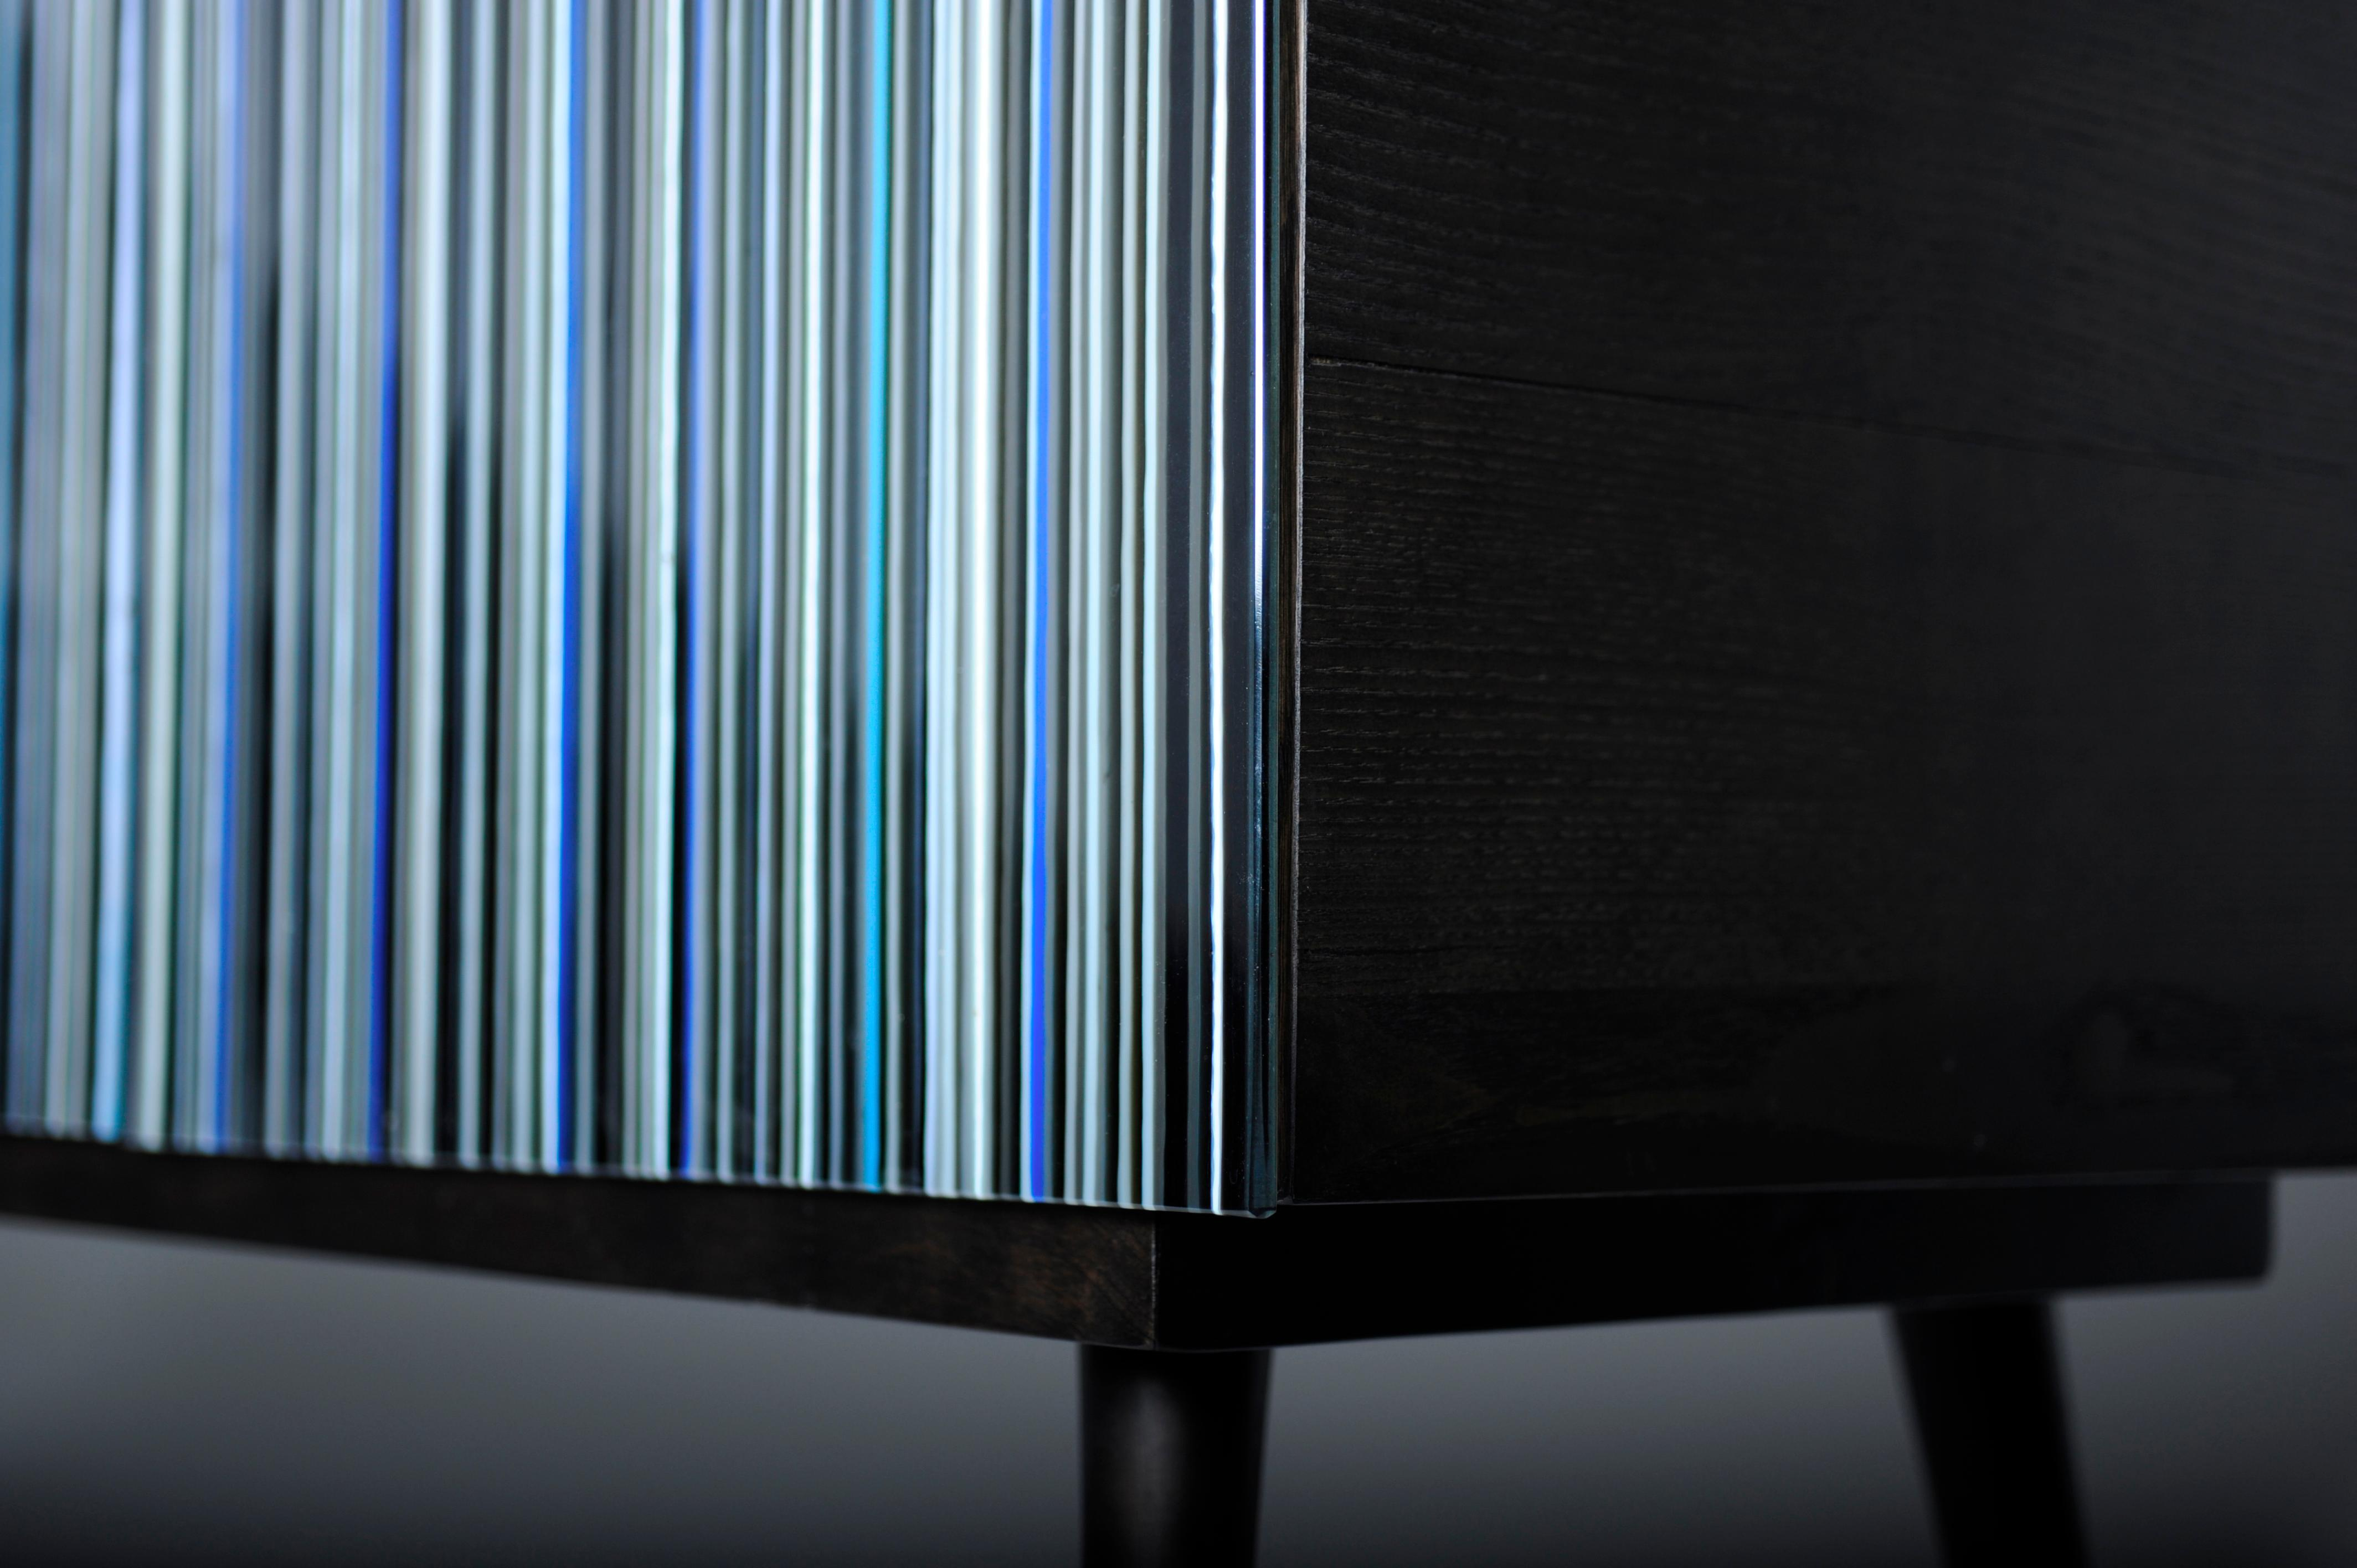 Retro Style Buffet Credenza, Barcode Design In Colored Glass, Shades Of Blue Inside Blue Stained Glass Credenzas (Photo 8 of 30)